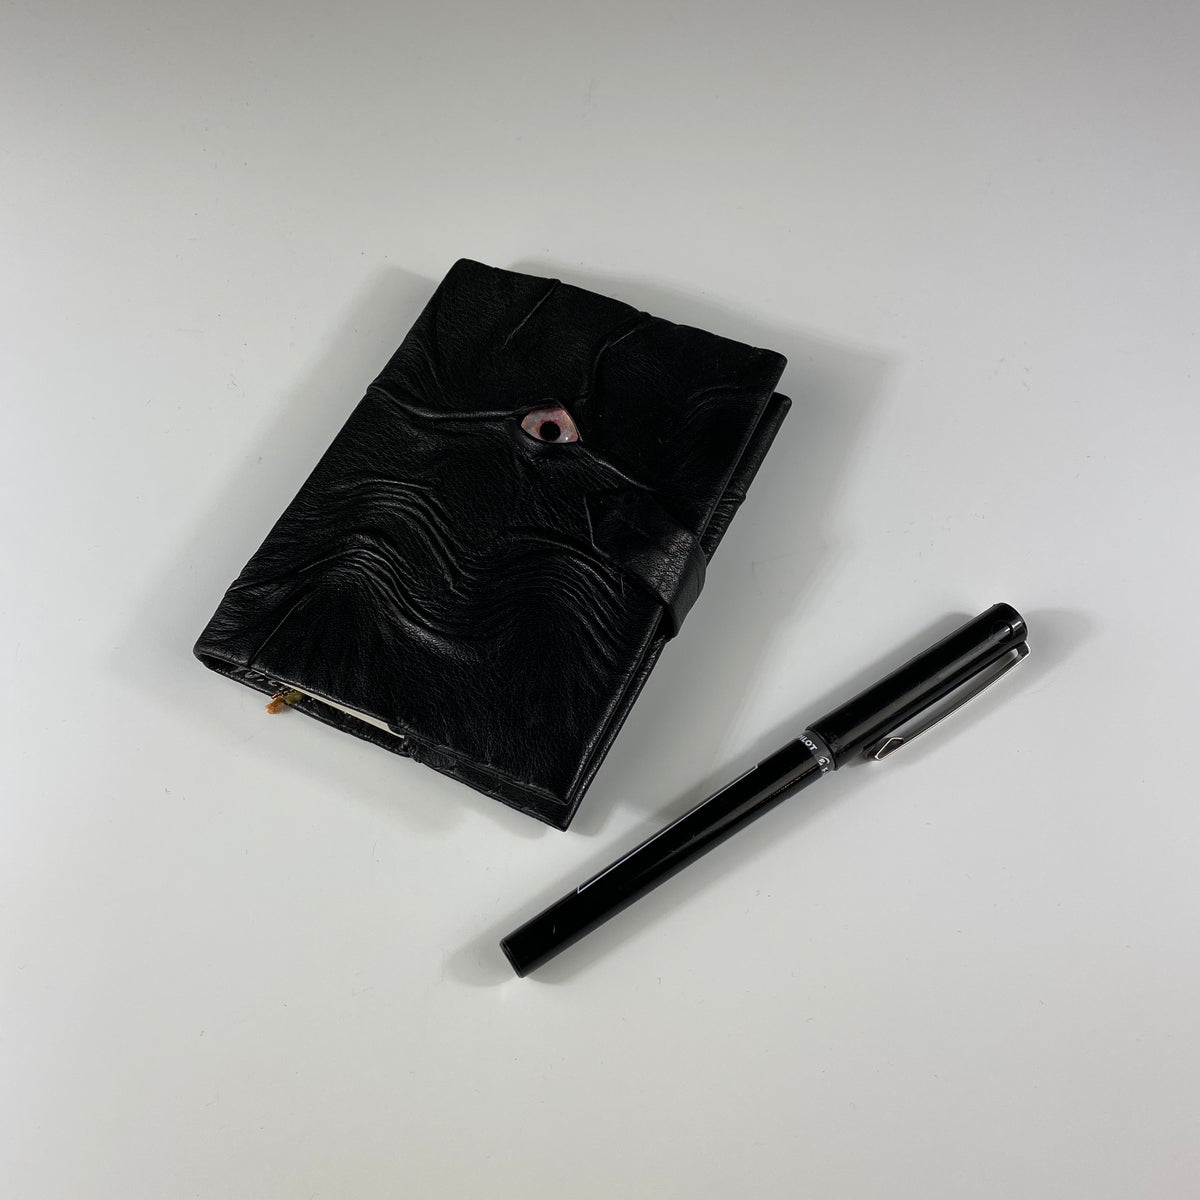 Small Notepad Holder with Eye - Heart of the Home PA